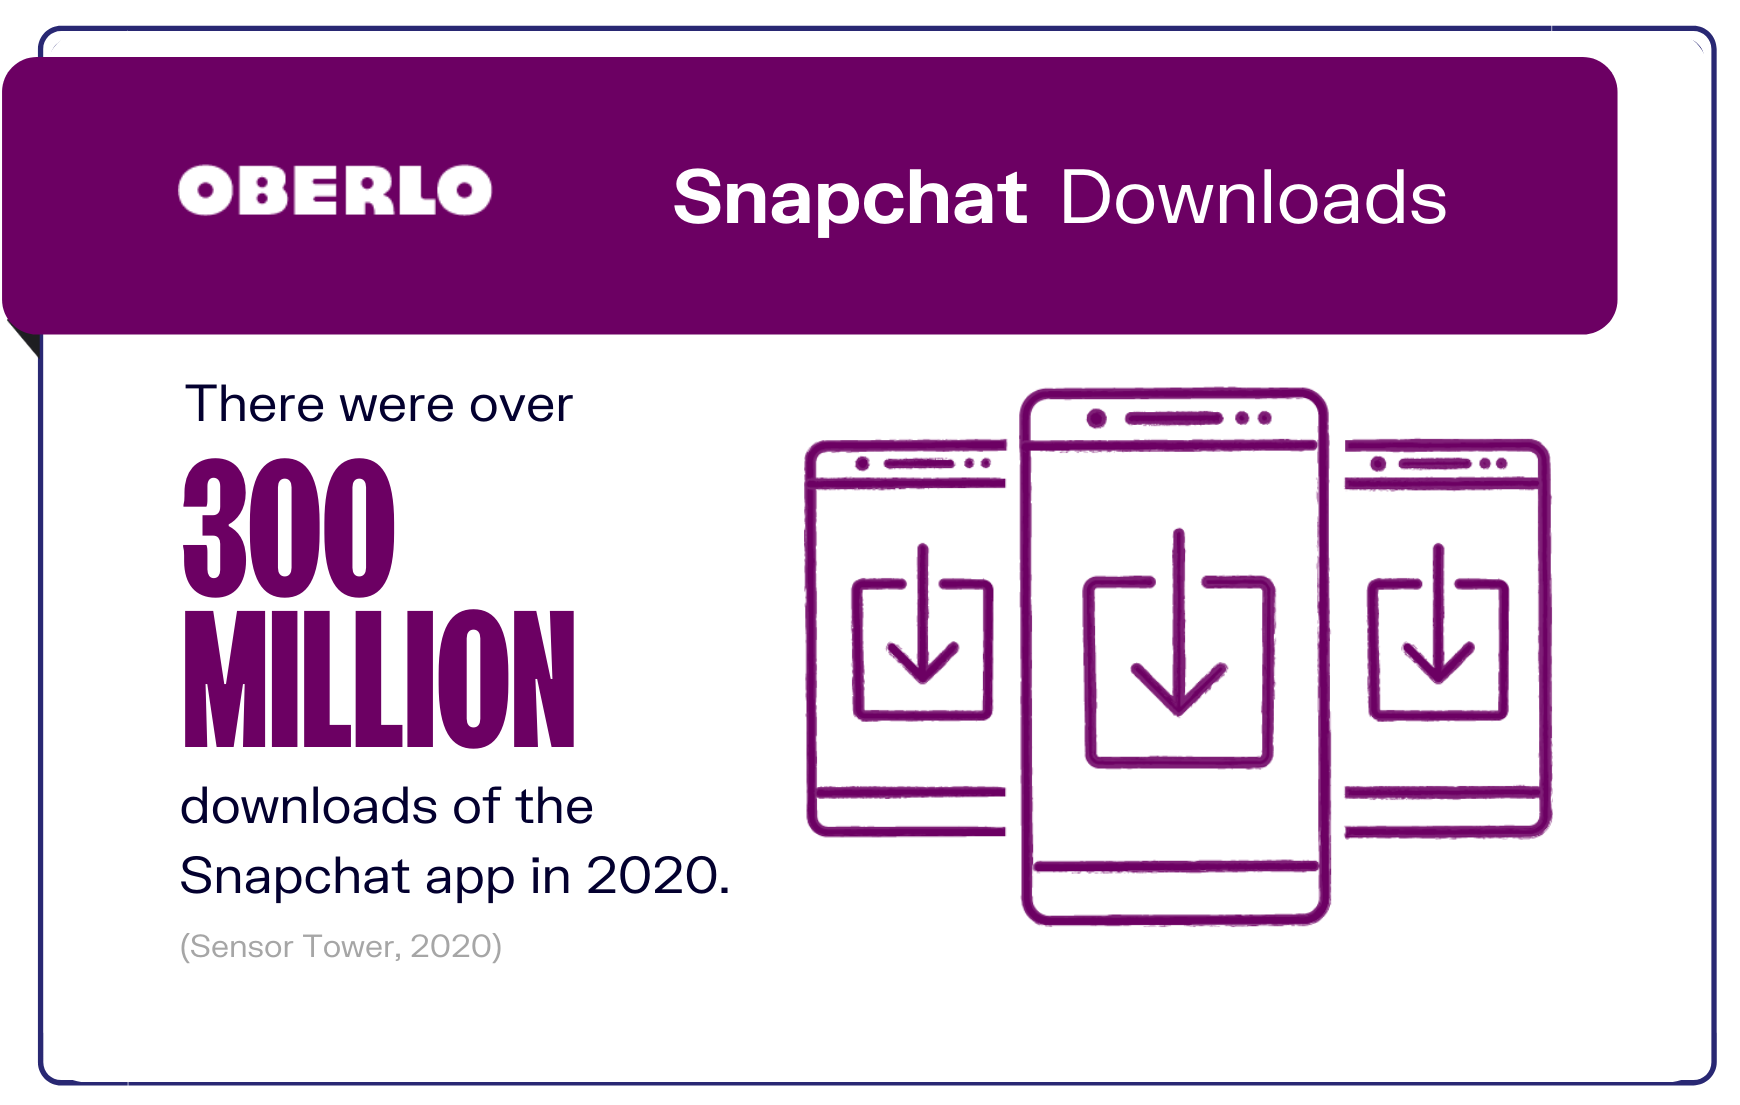 Snapchat Downloads graphic